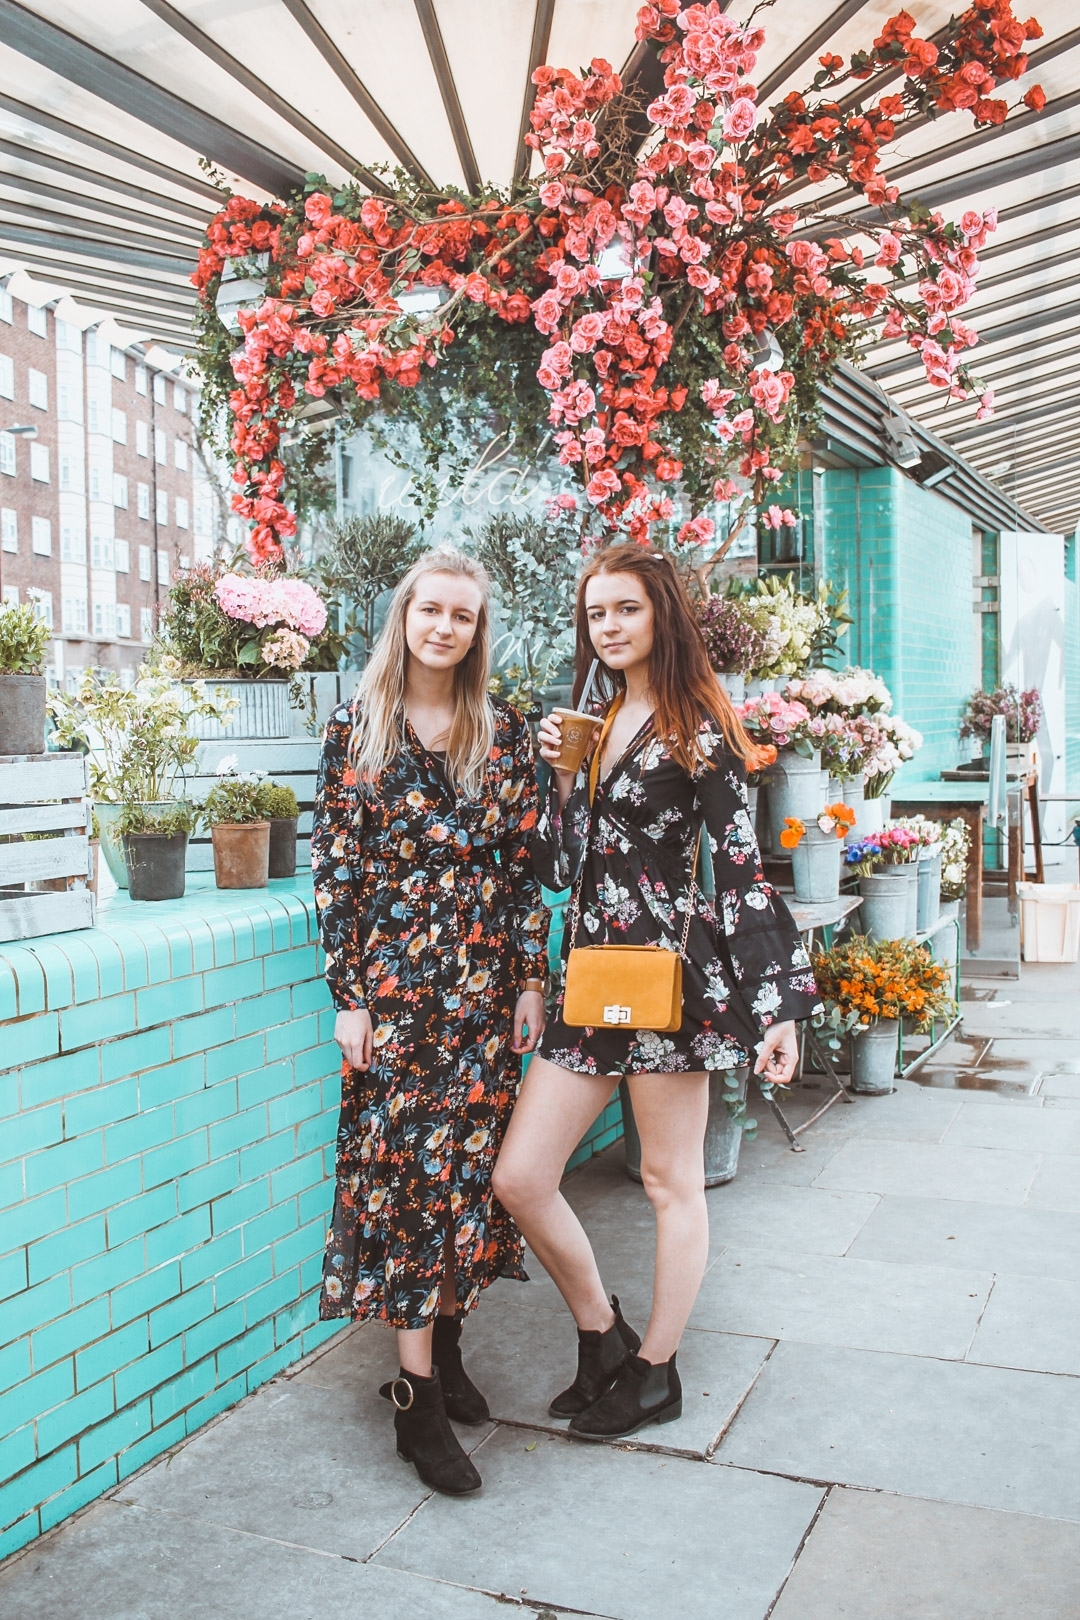 Two Times Style    Fashion, beauty and lifestyle bloggers, Emma and Laura, are the identical twin team sharing their latest travel tips, fashion staples and product reviews with their 30,000 strong Instagram following.   Past project  - Wowcher:  Exploring the sites of London and luxury hotel stays in collaboration with Wowcher.